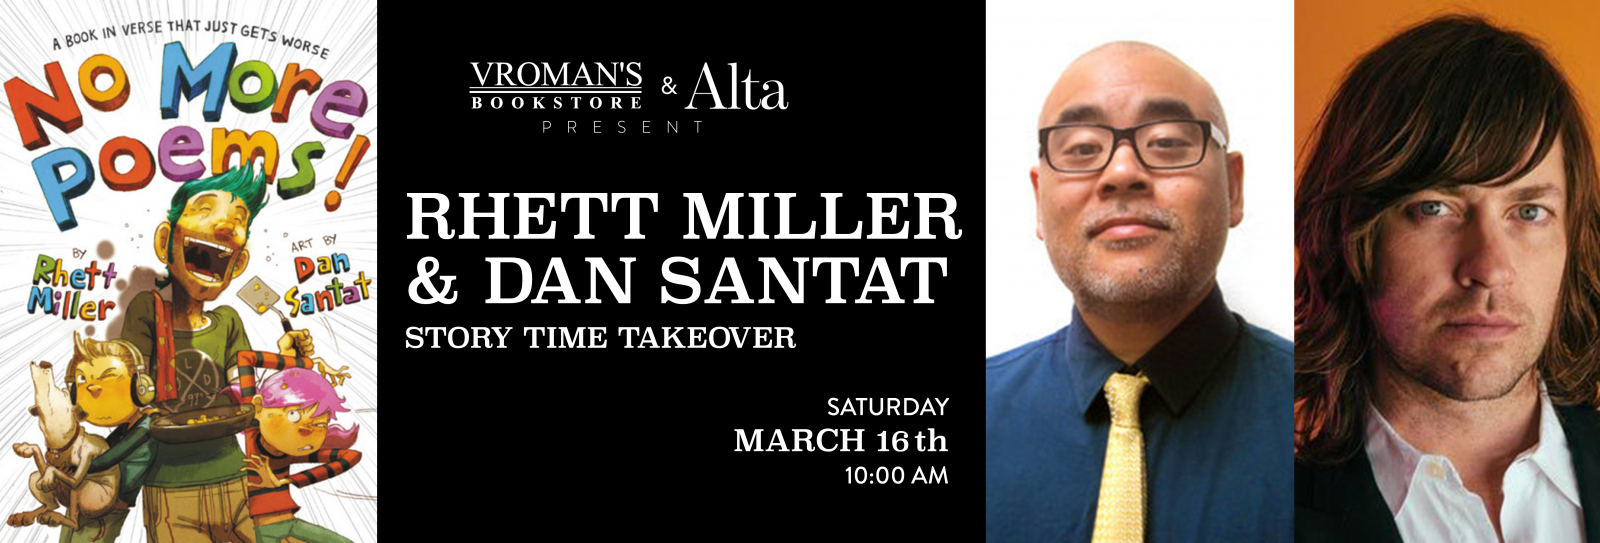 Rhett Miller and Dan Santat March 16th at 10am